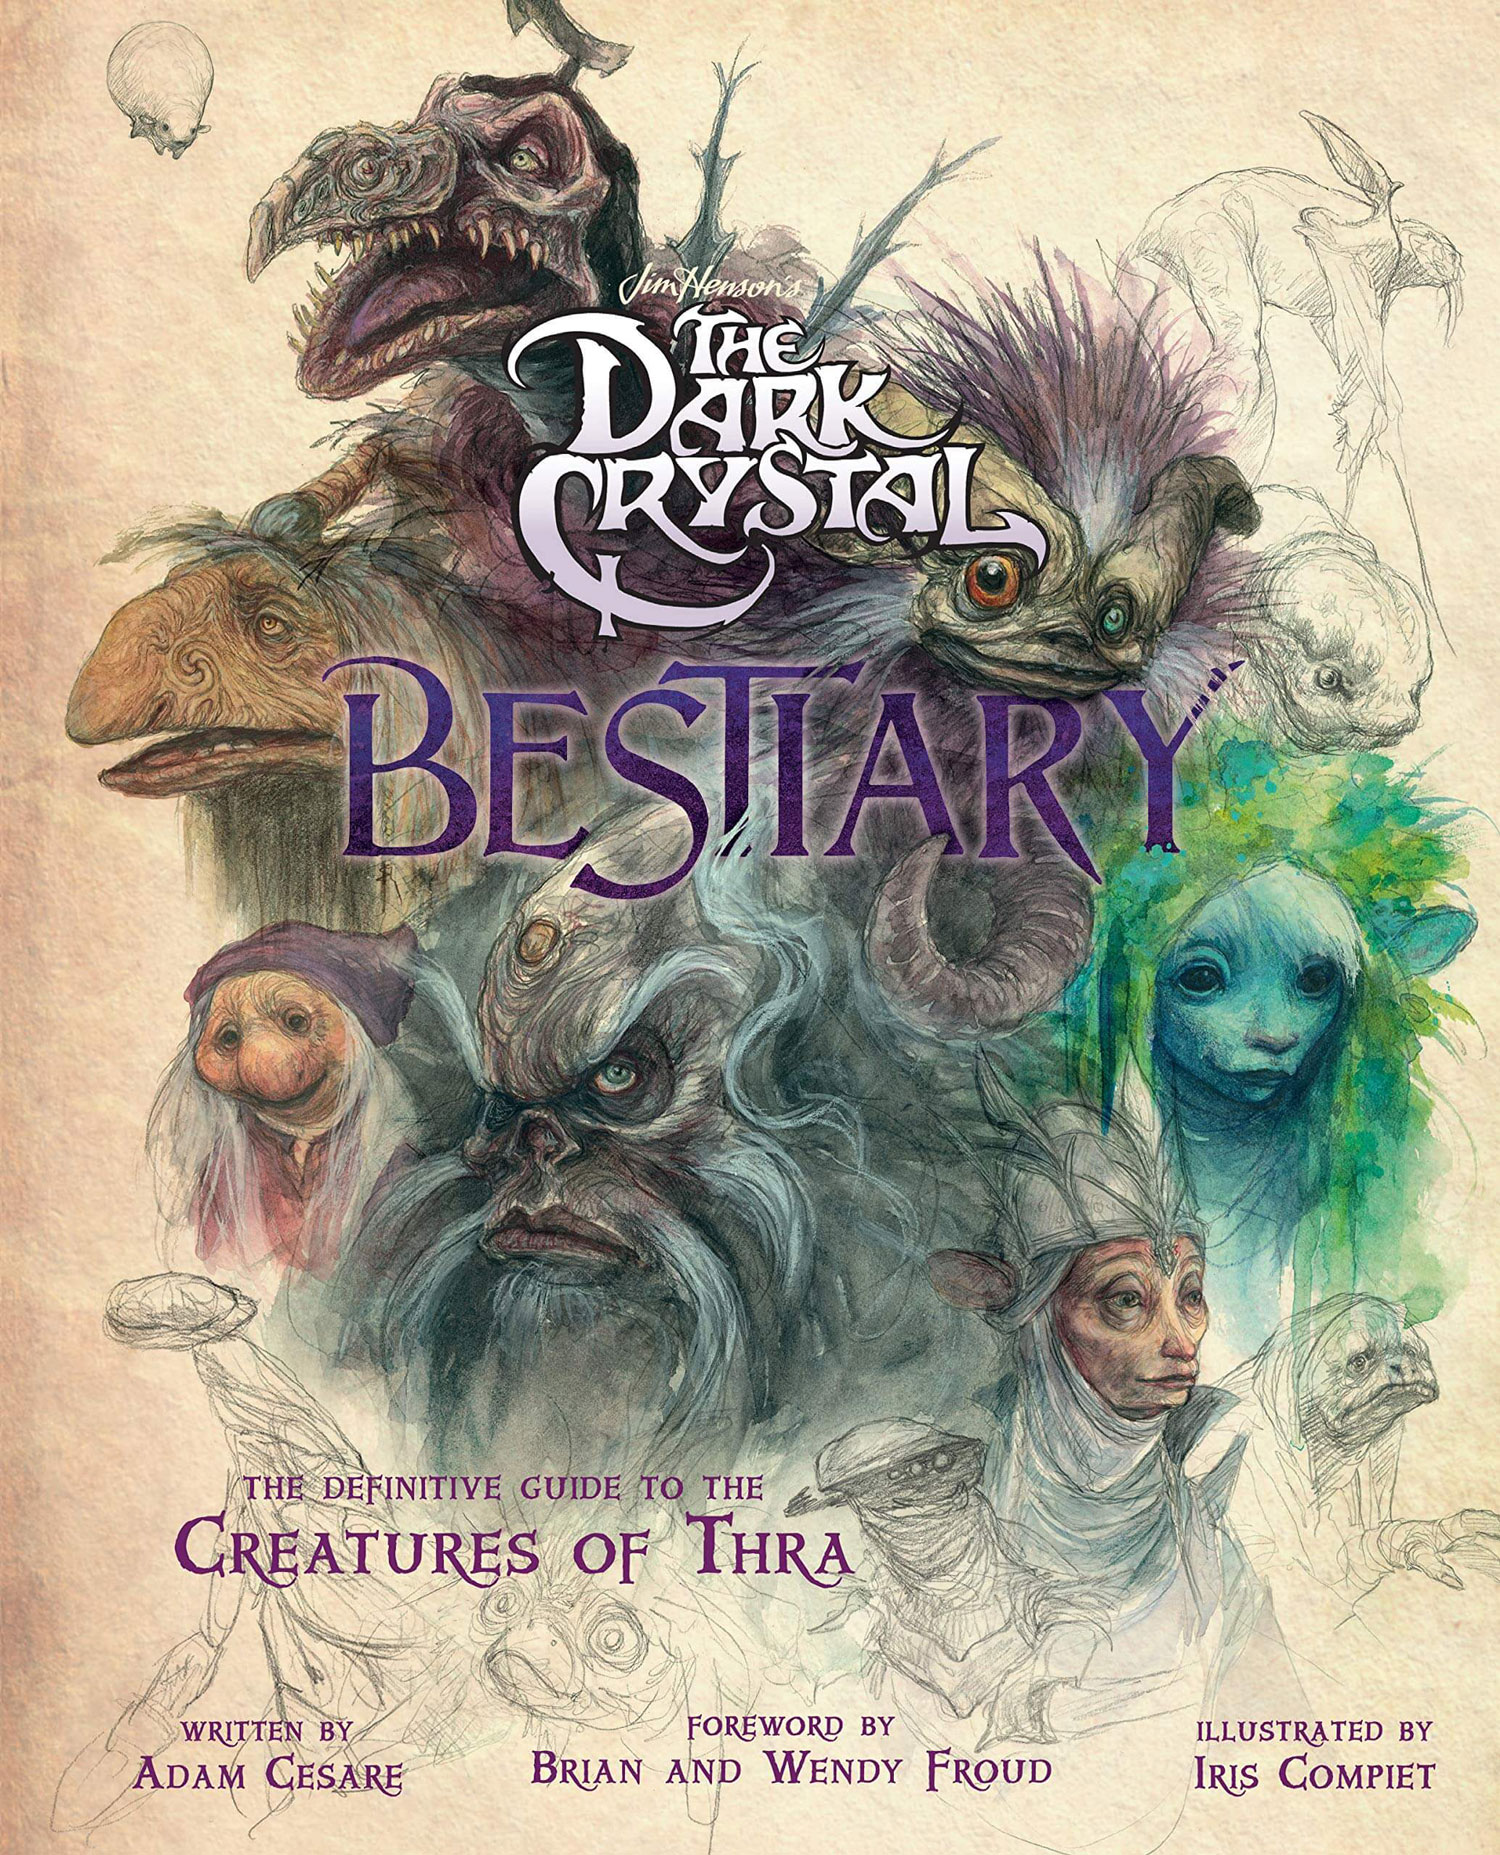 dark crystal bestiary cover